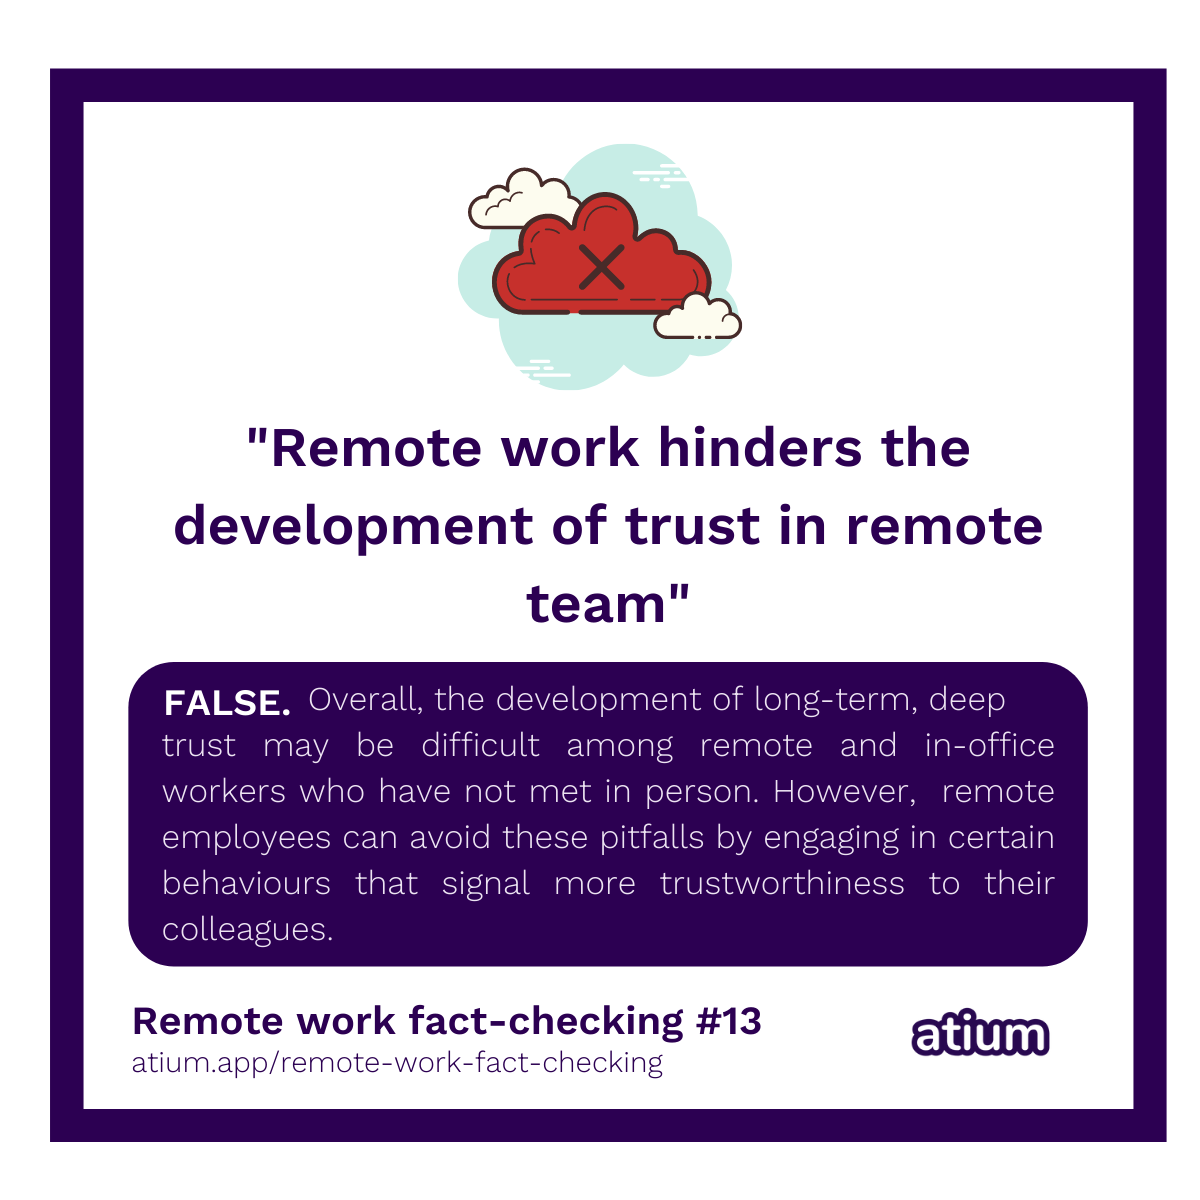 Remote work hinders the development of trust in remote teams